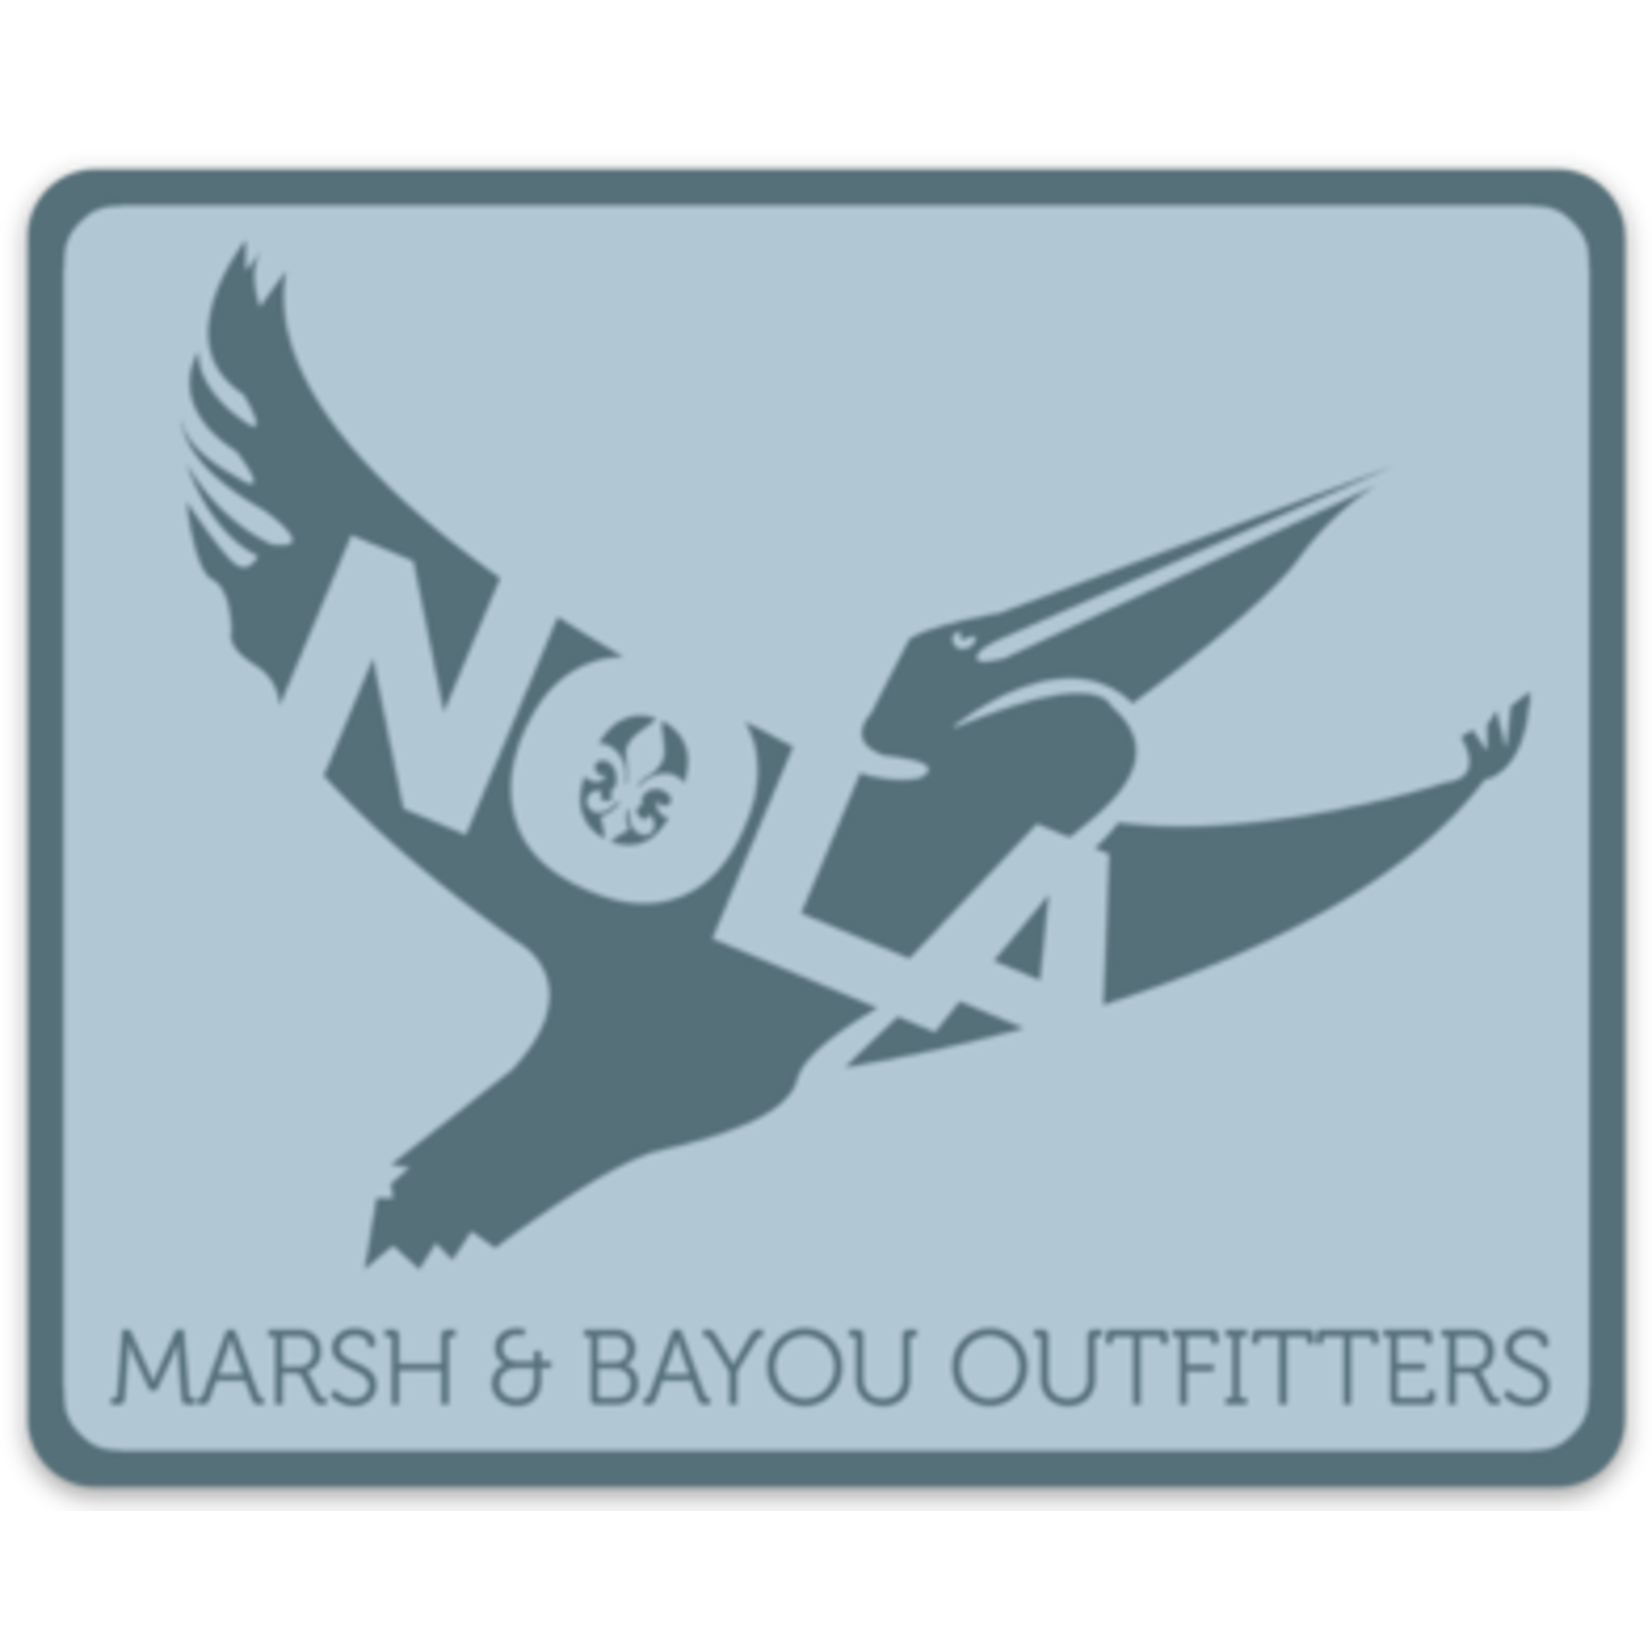 Marsh & Bayou Outfitters | Pelican Decal